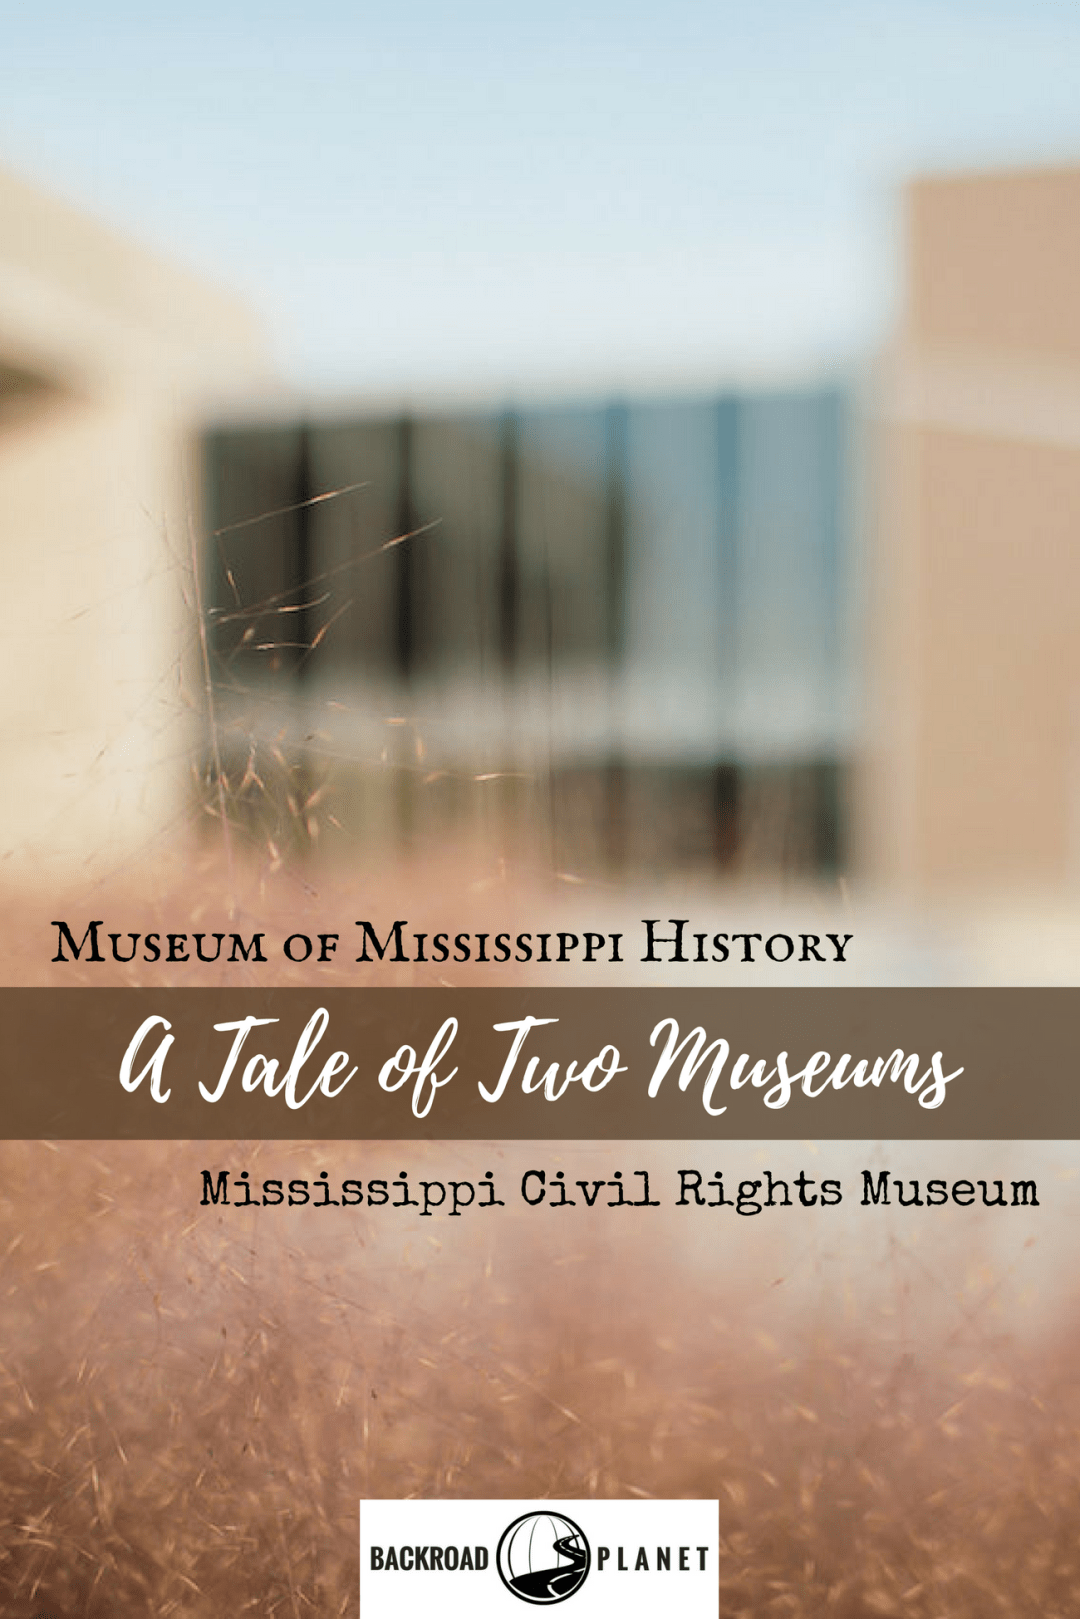 Copy of A Tale of Two Museums 2 - Two Mississippi Museums Chronicle State & Civil Rights History